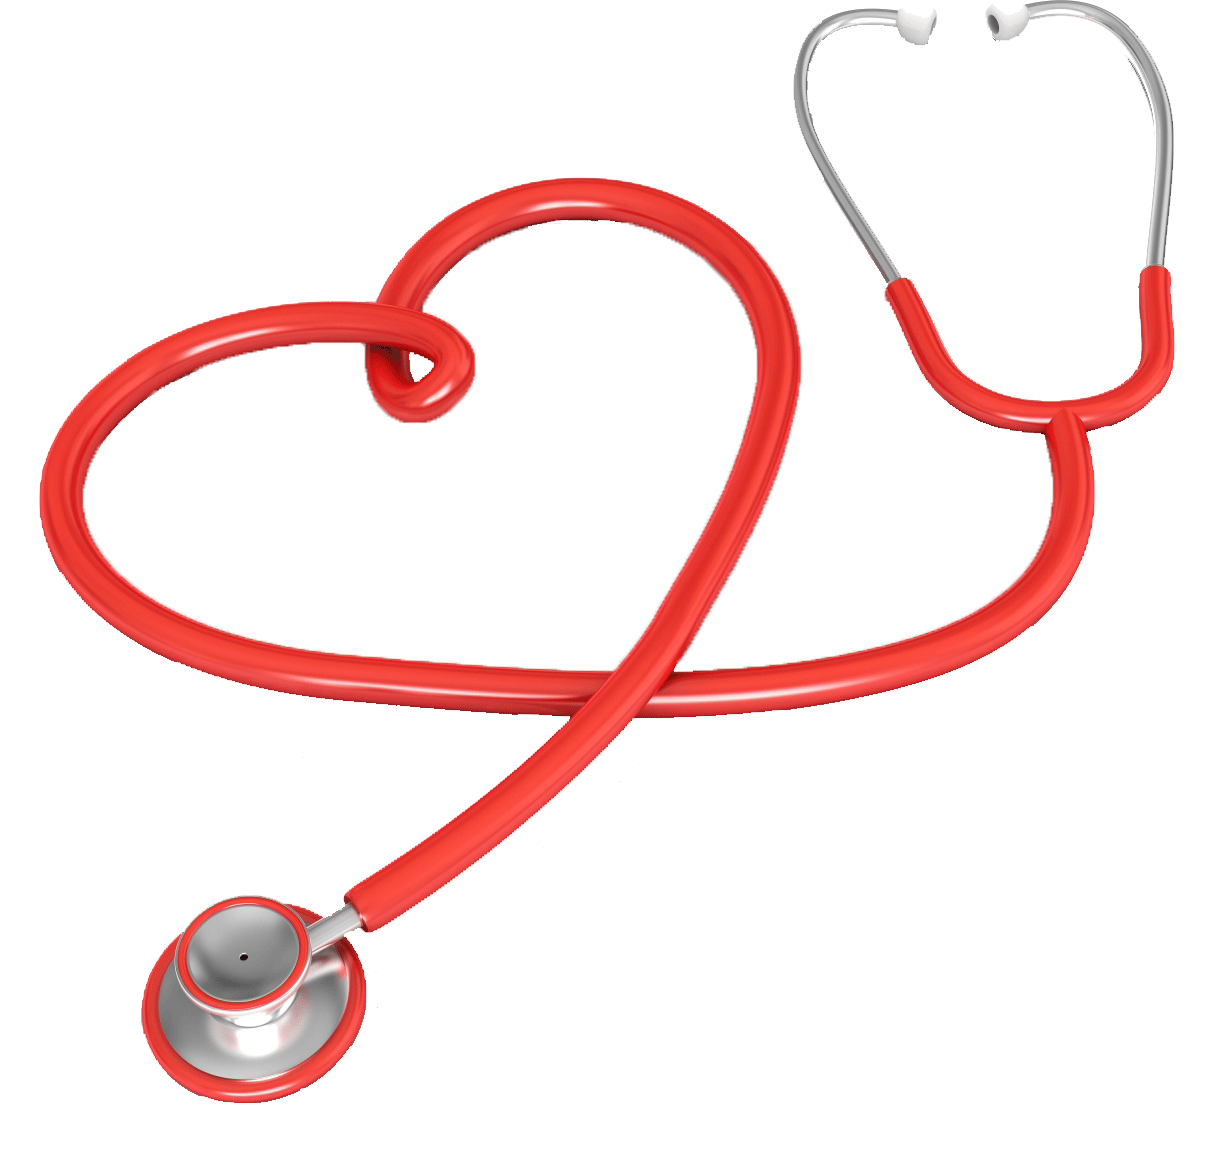 Transparent stethoscope clear background. Healthcare clipart library